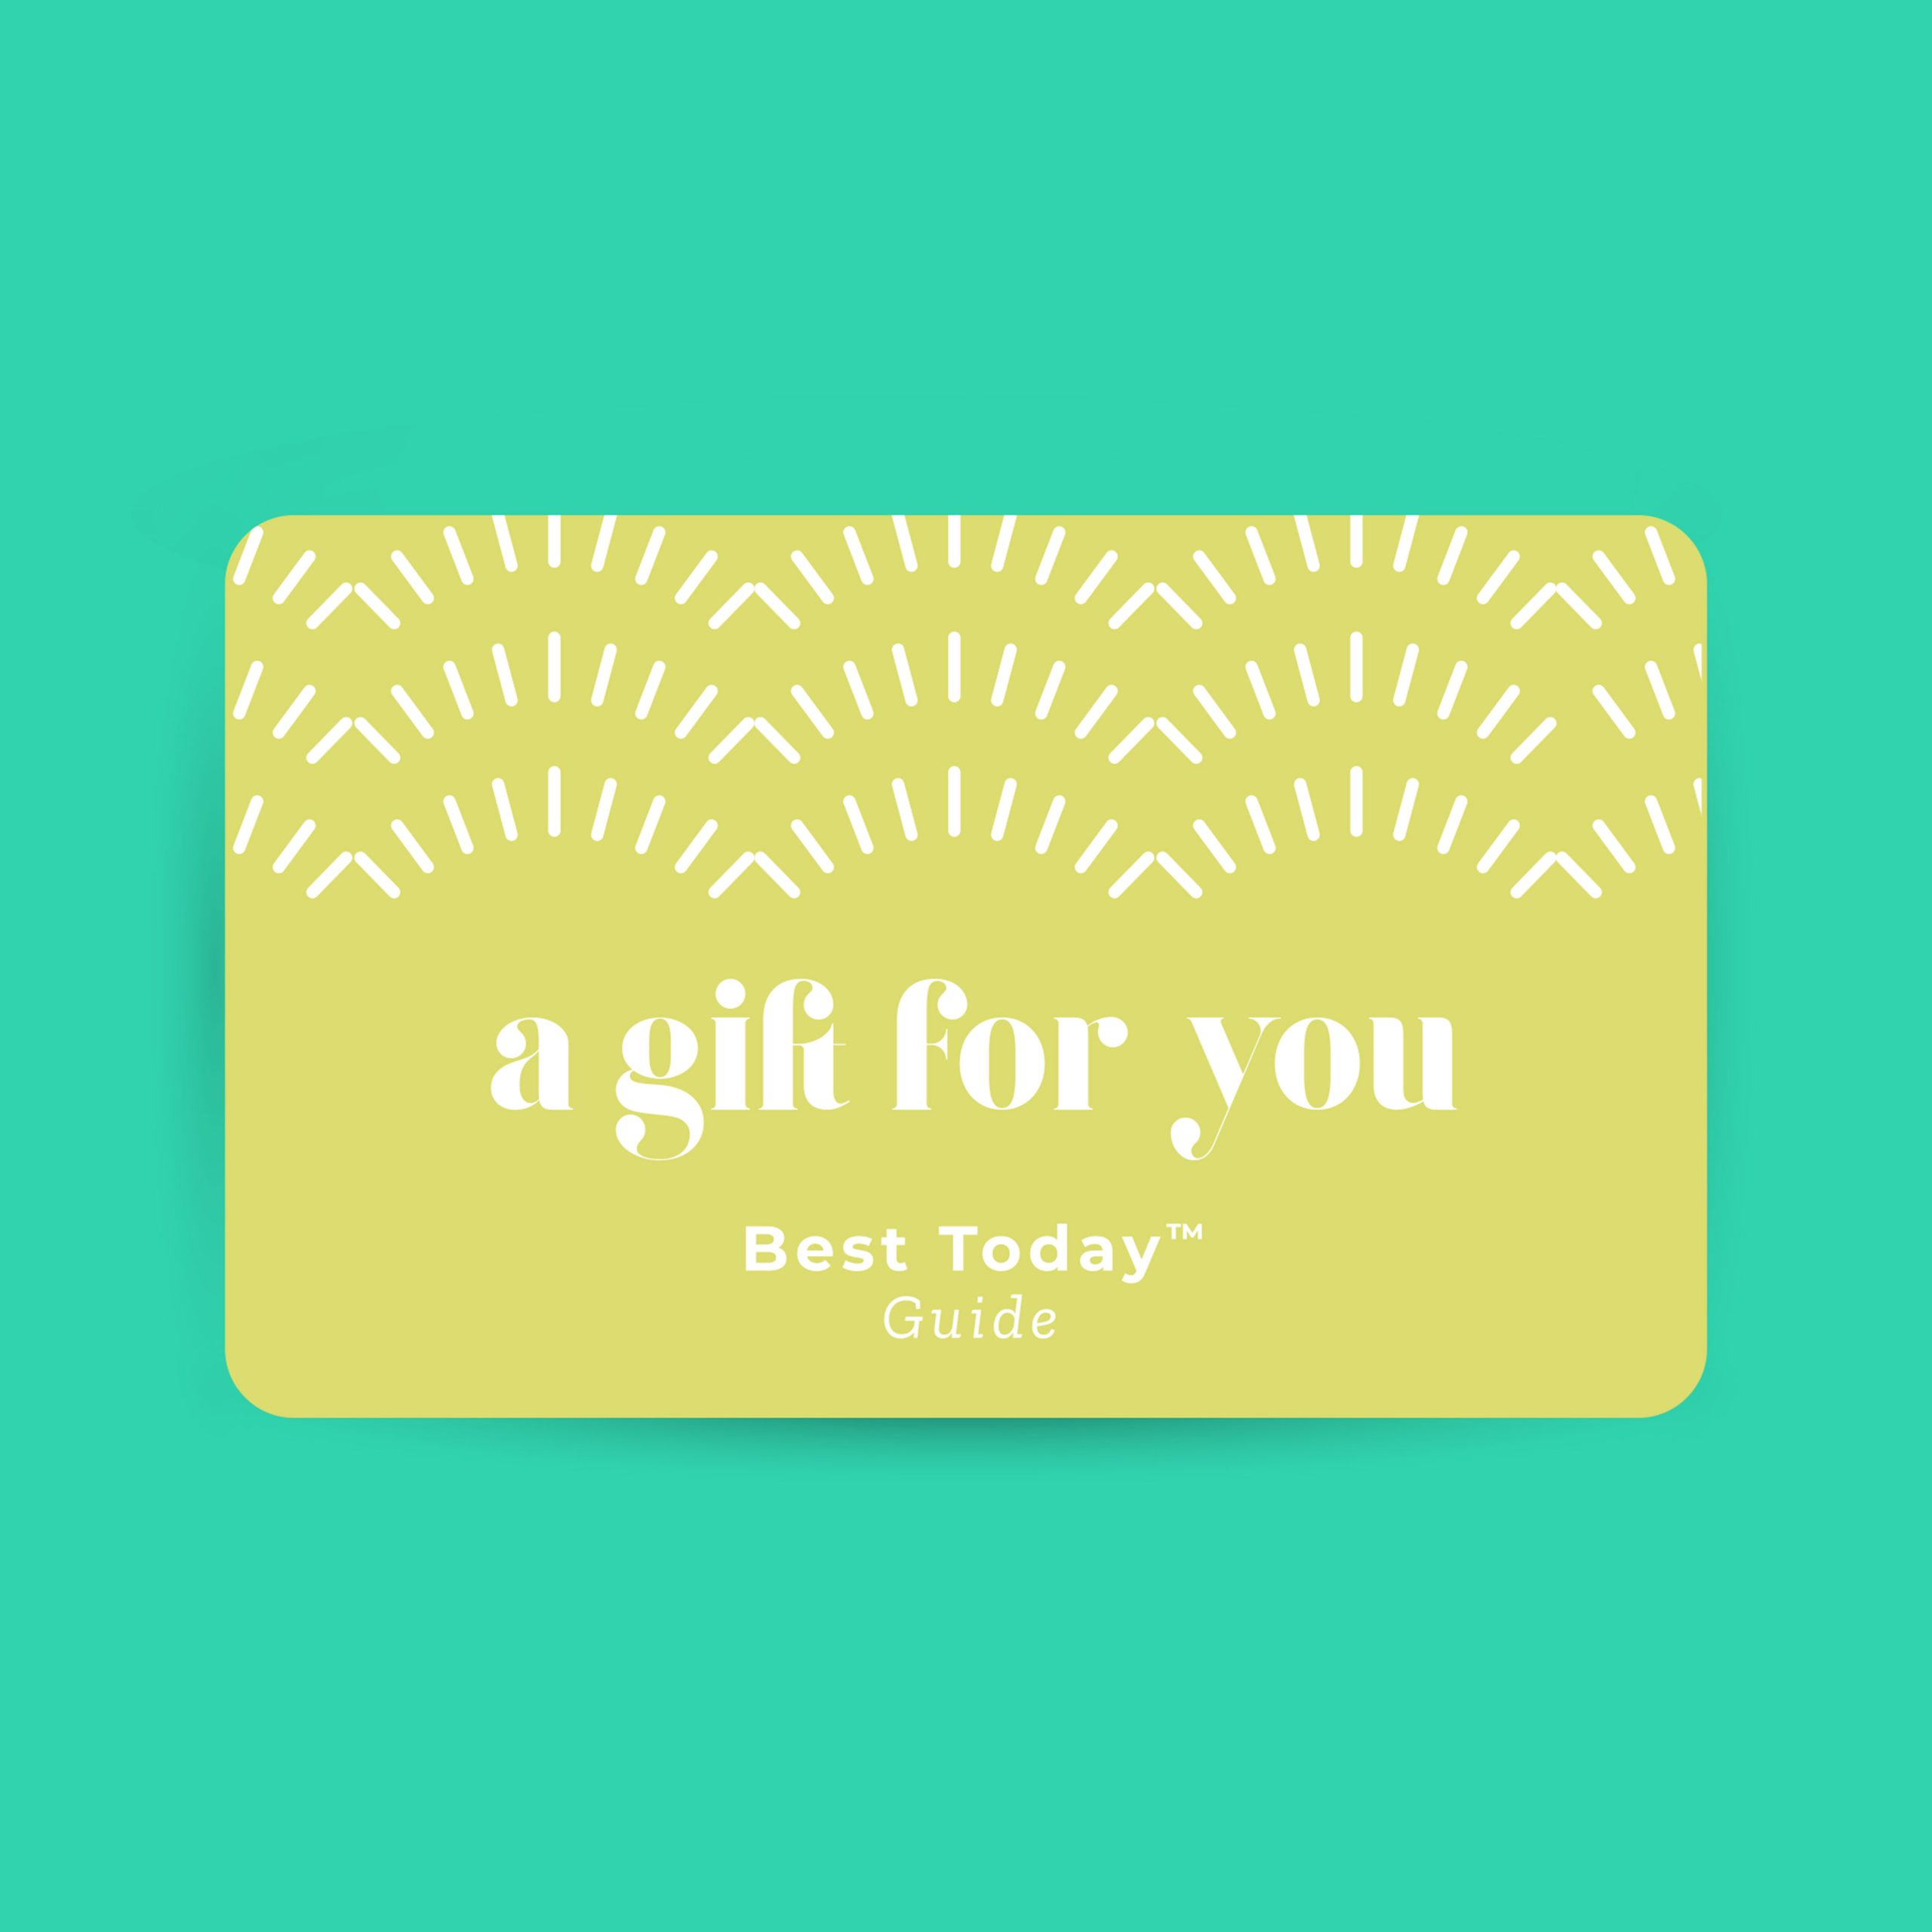 gift card designed for the Best Today brand by C&V